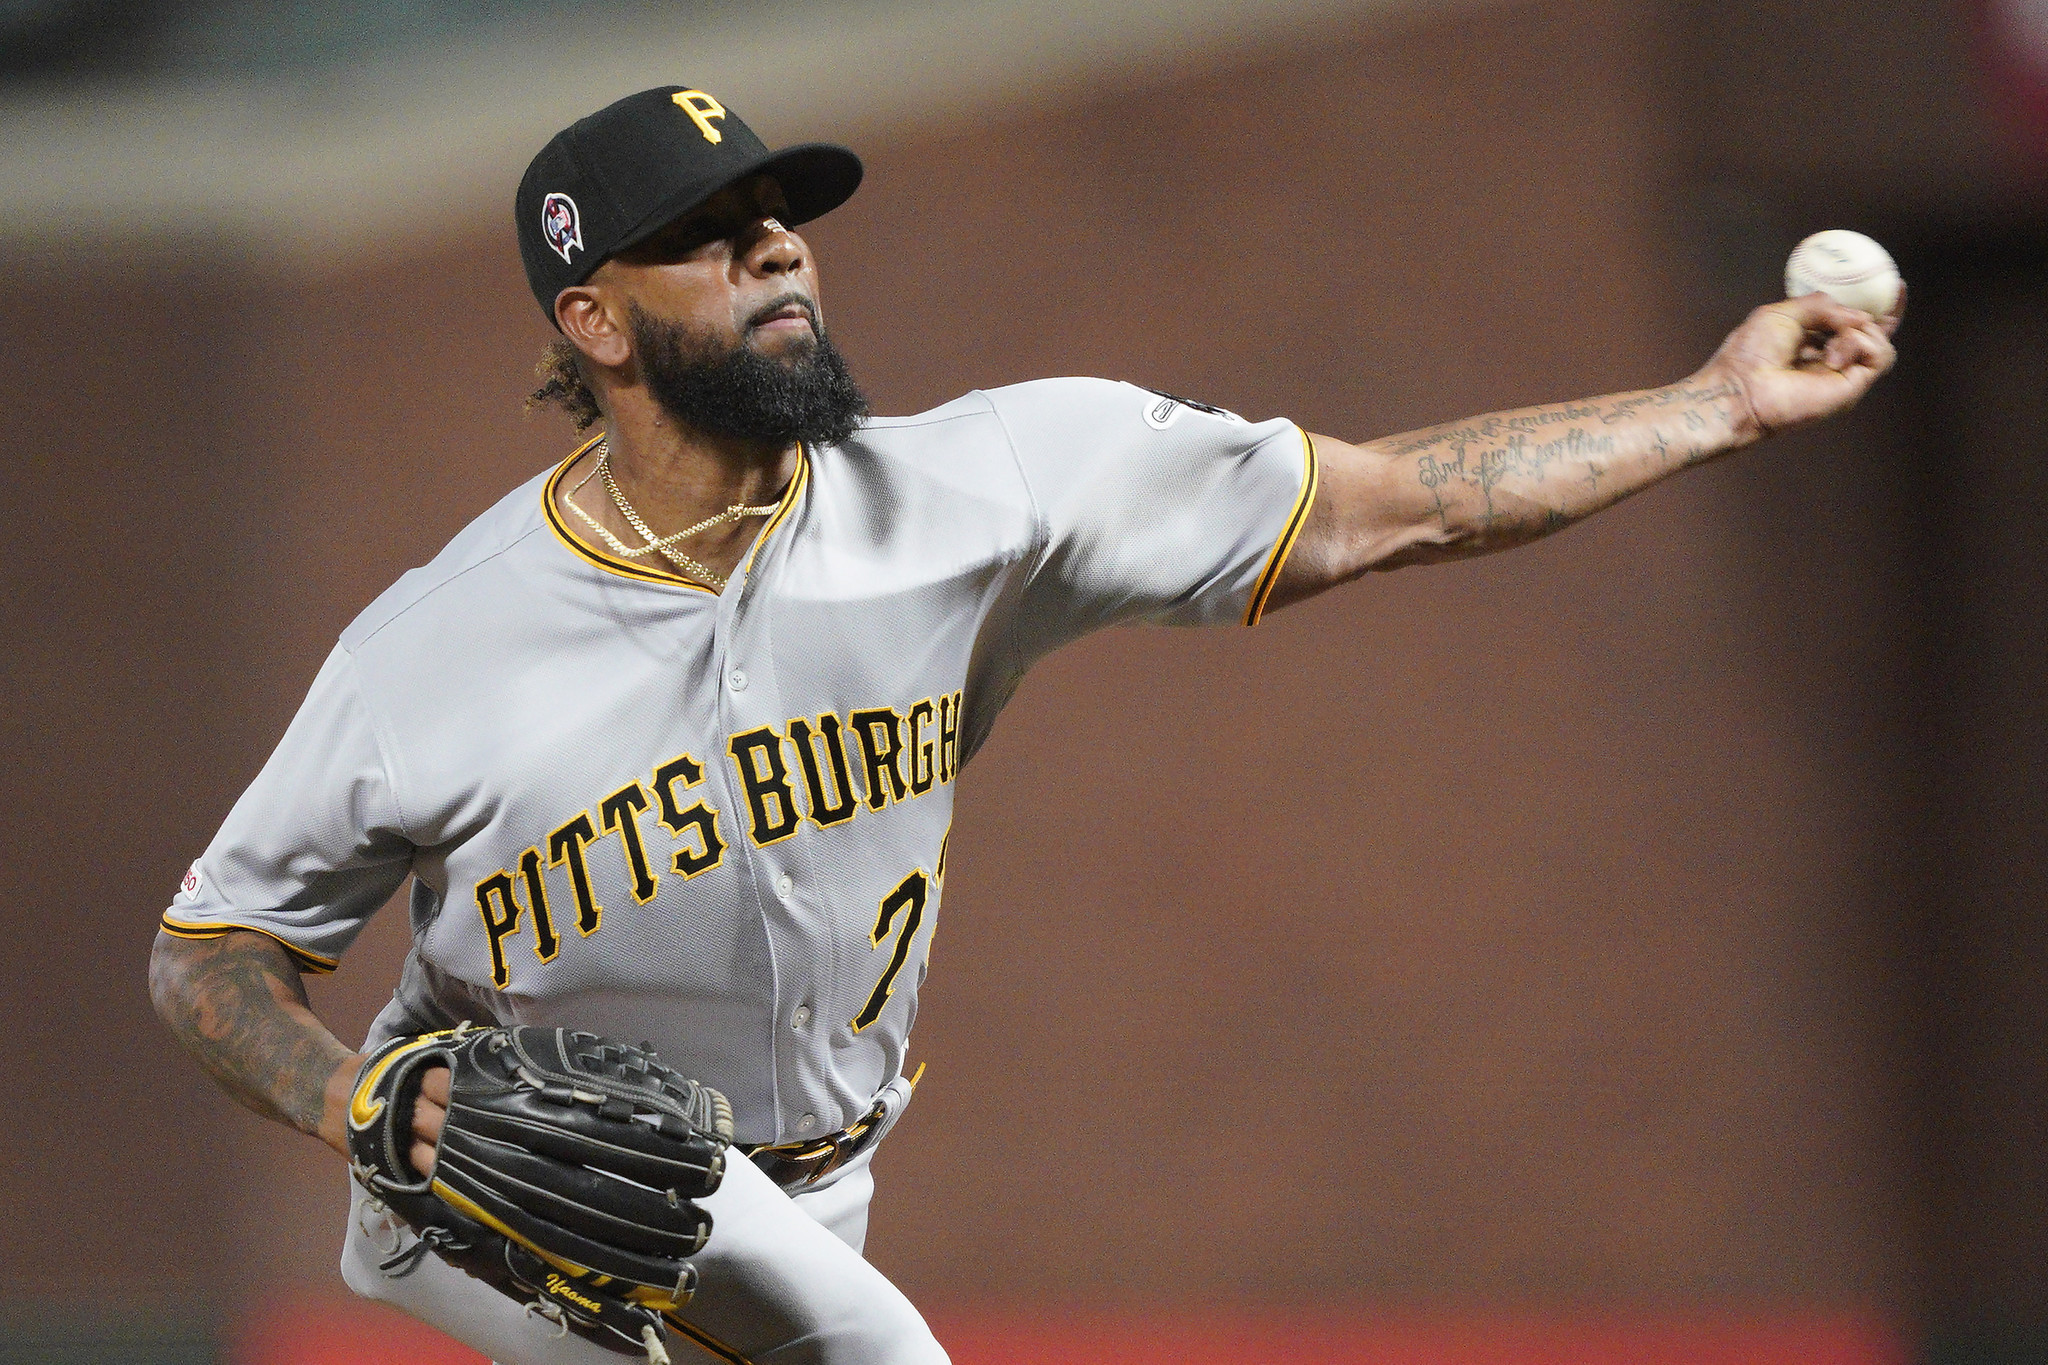 Pittsburgh Pirates pitcher Felipe Vazquez charged with child solicitation